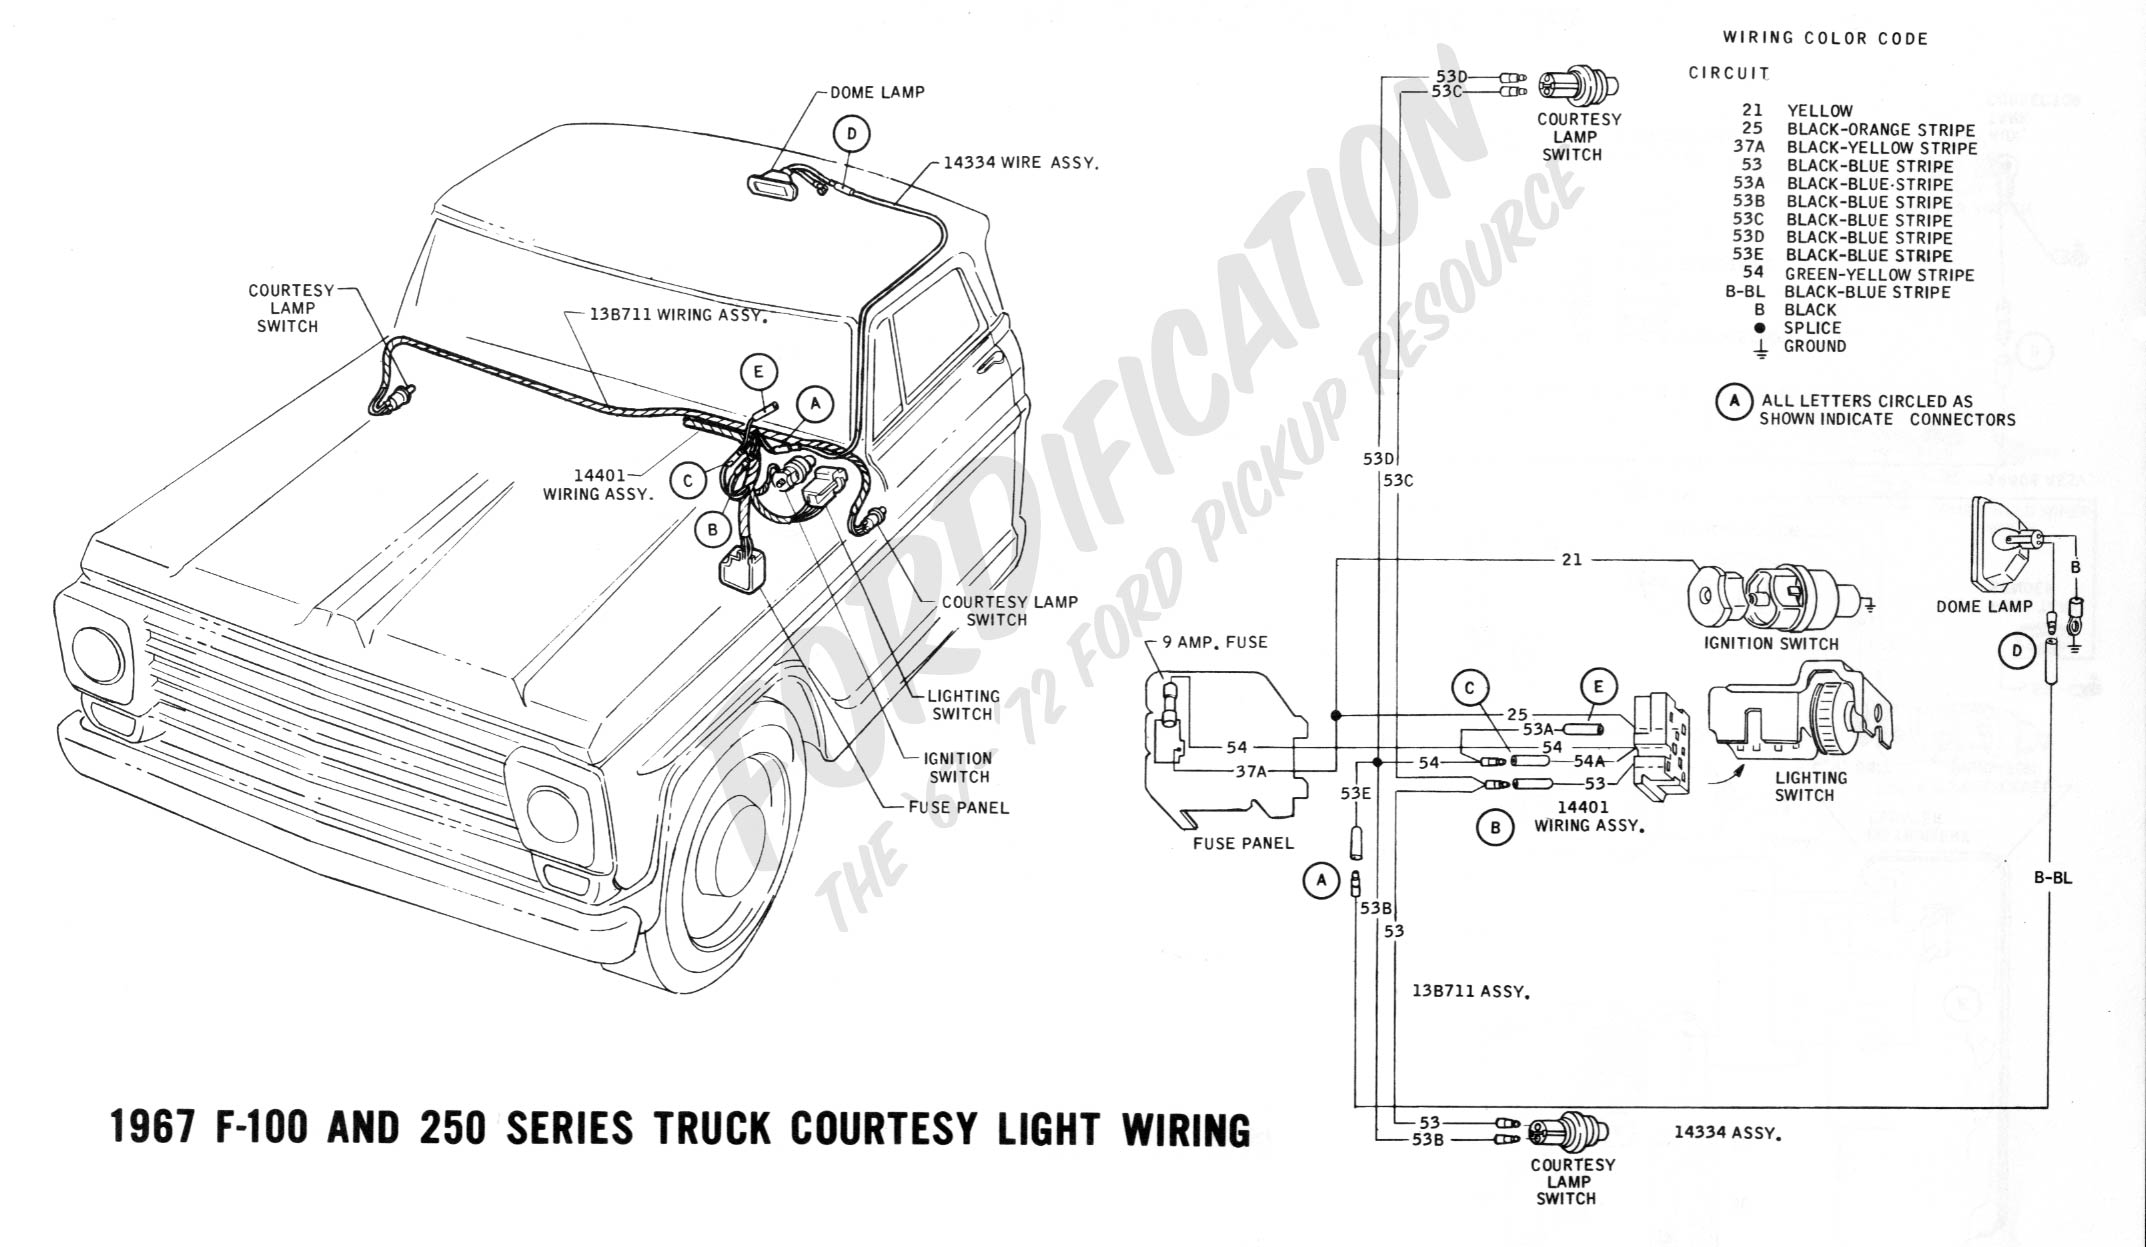 ford truck technical drawings and schematics section h wiring Ford Electrical Diagram 1967 f 100, f 250 courtesy light